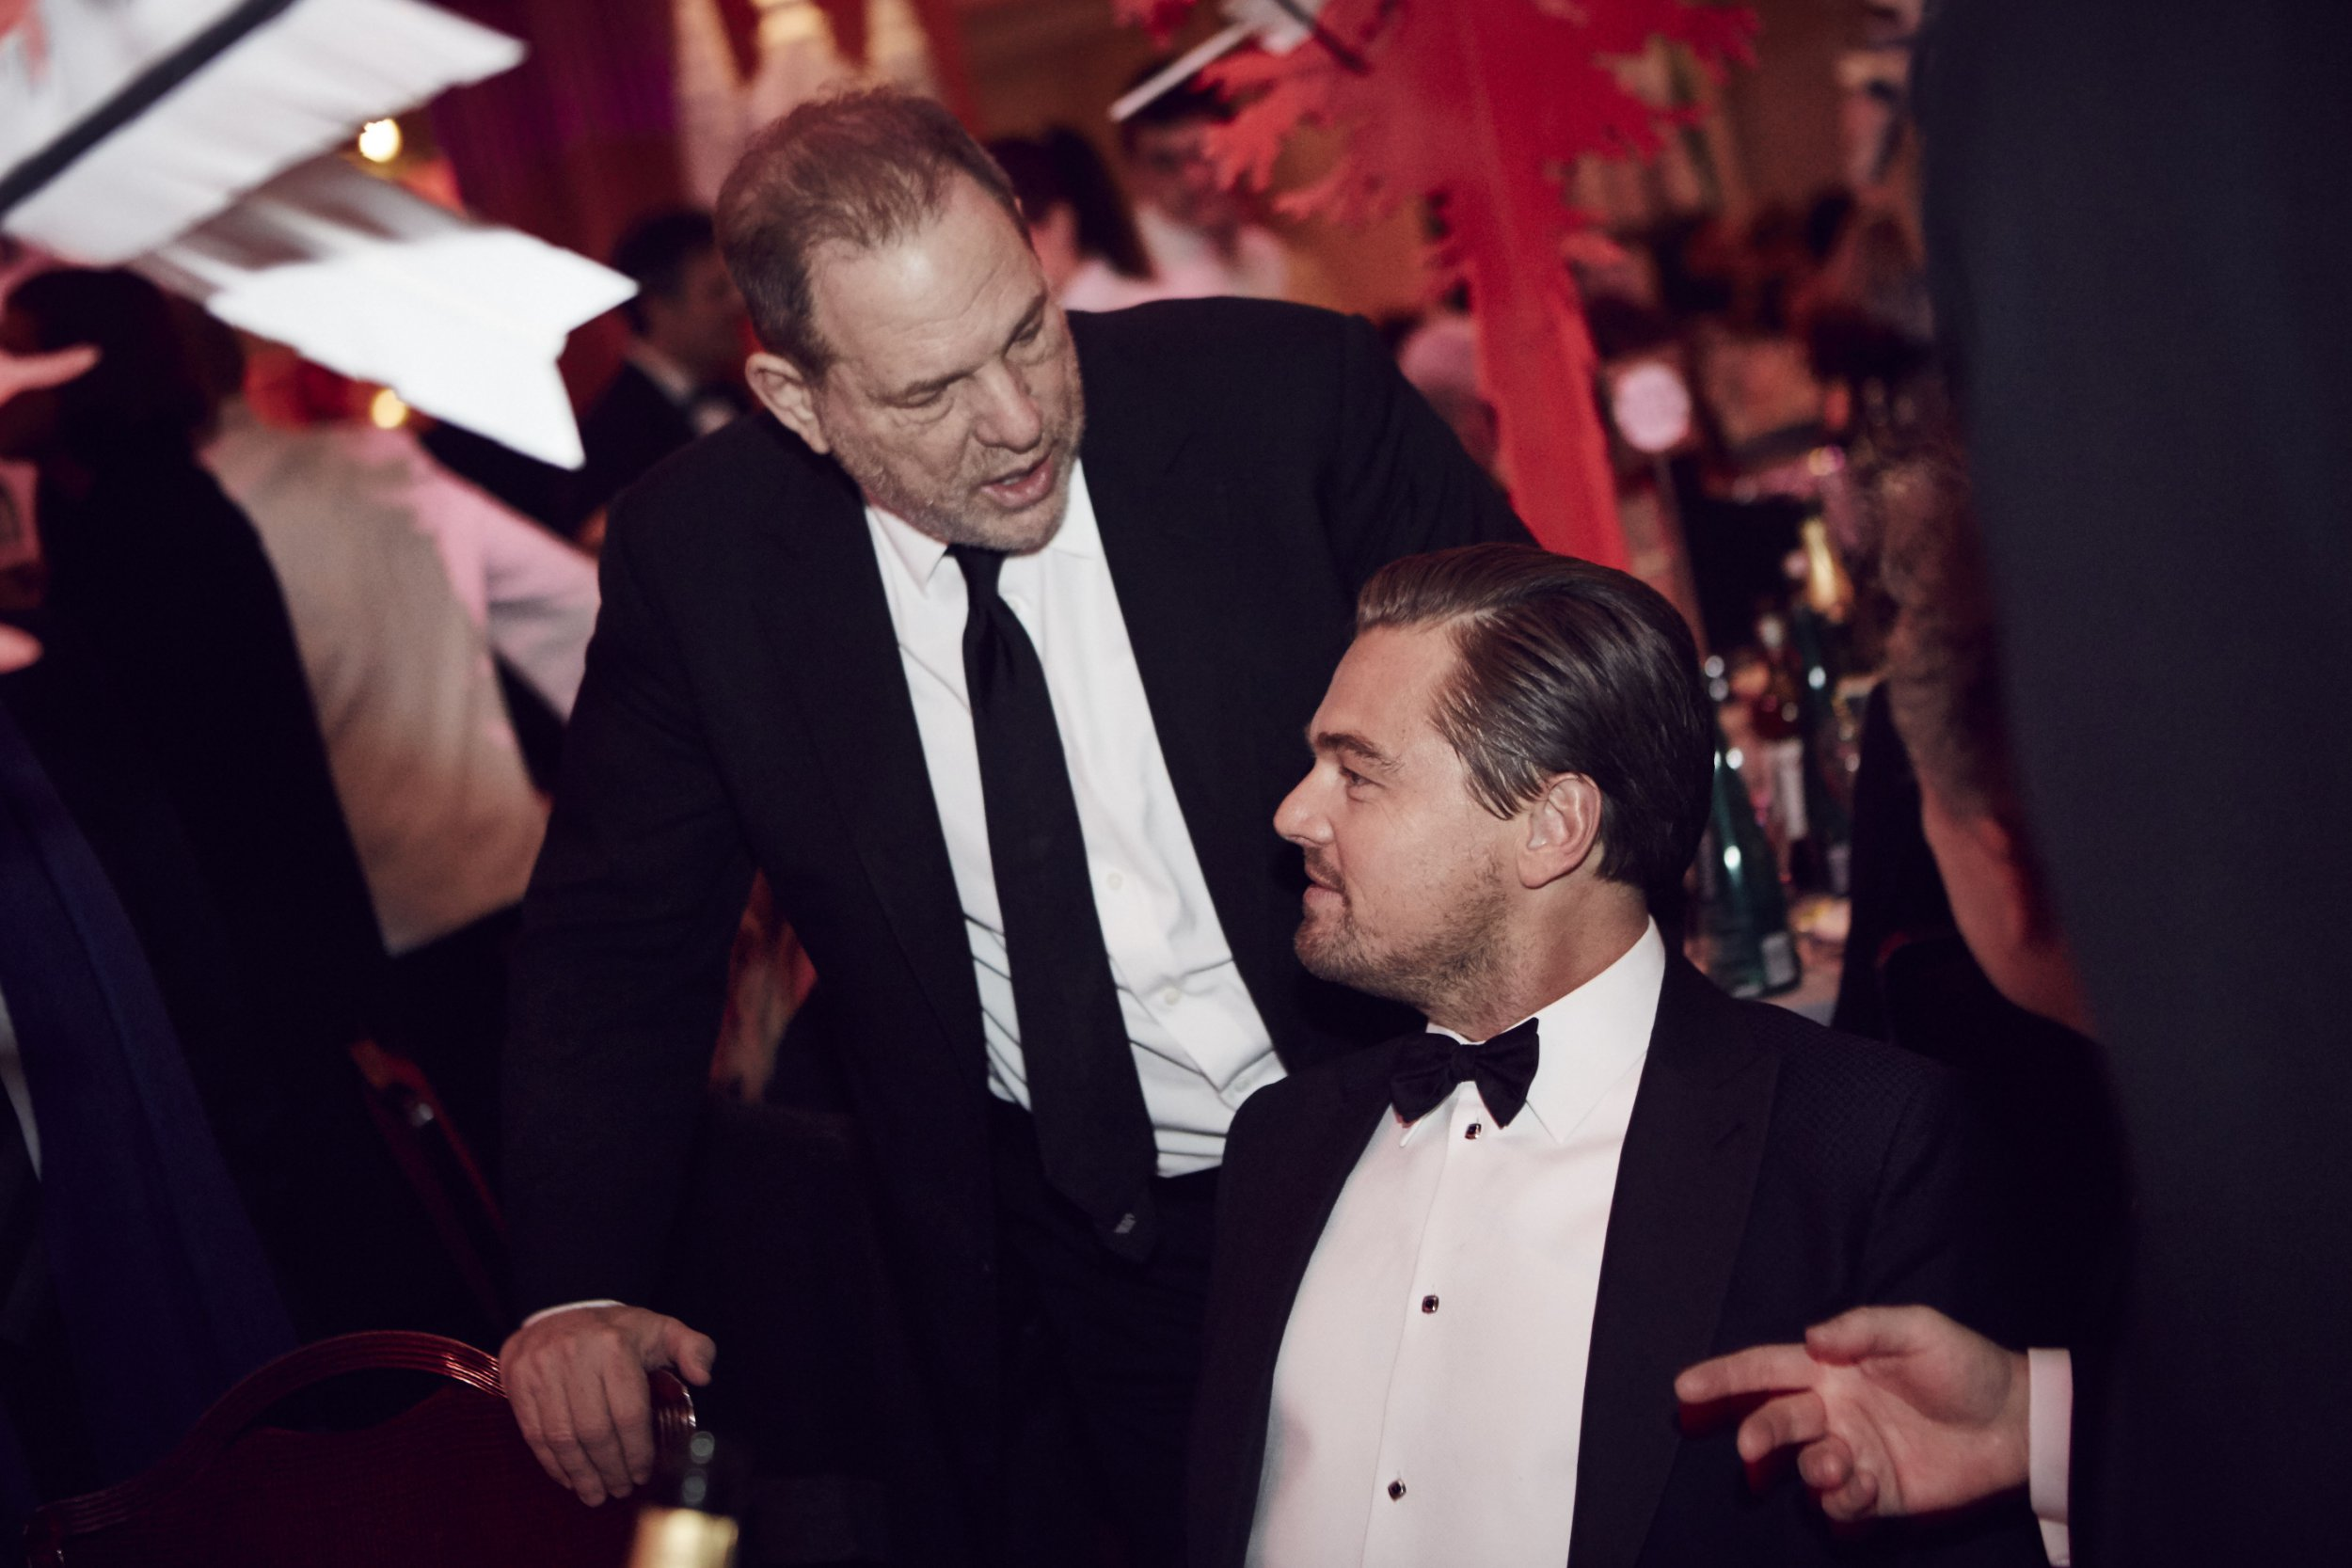 Leonardo DiCaprio breaks silence on Harvey Weinstein and applauds women who have 'made their voices heard'